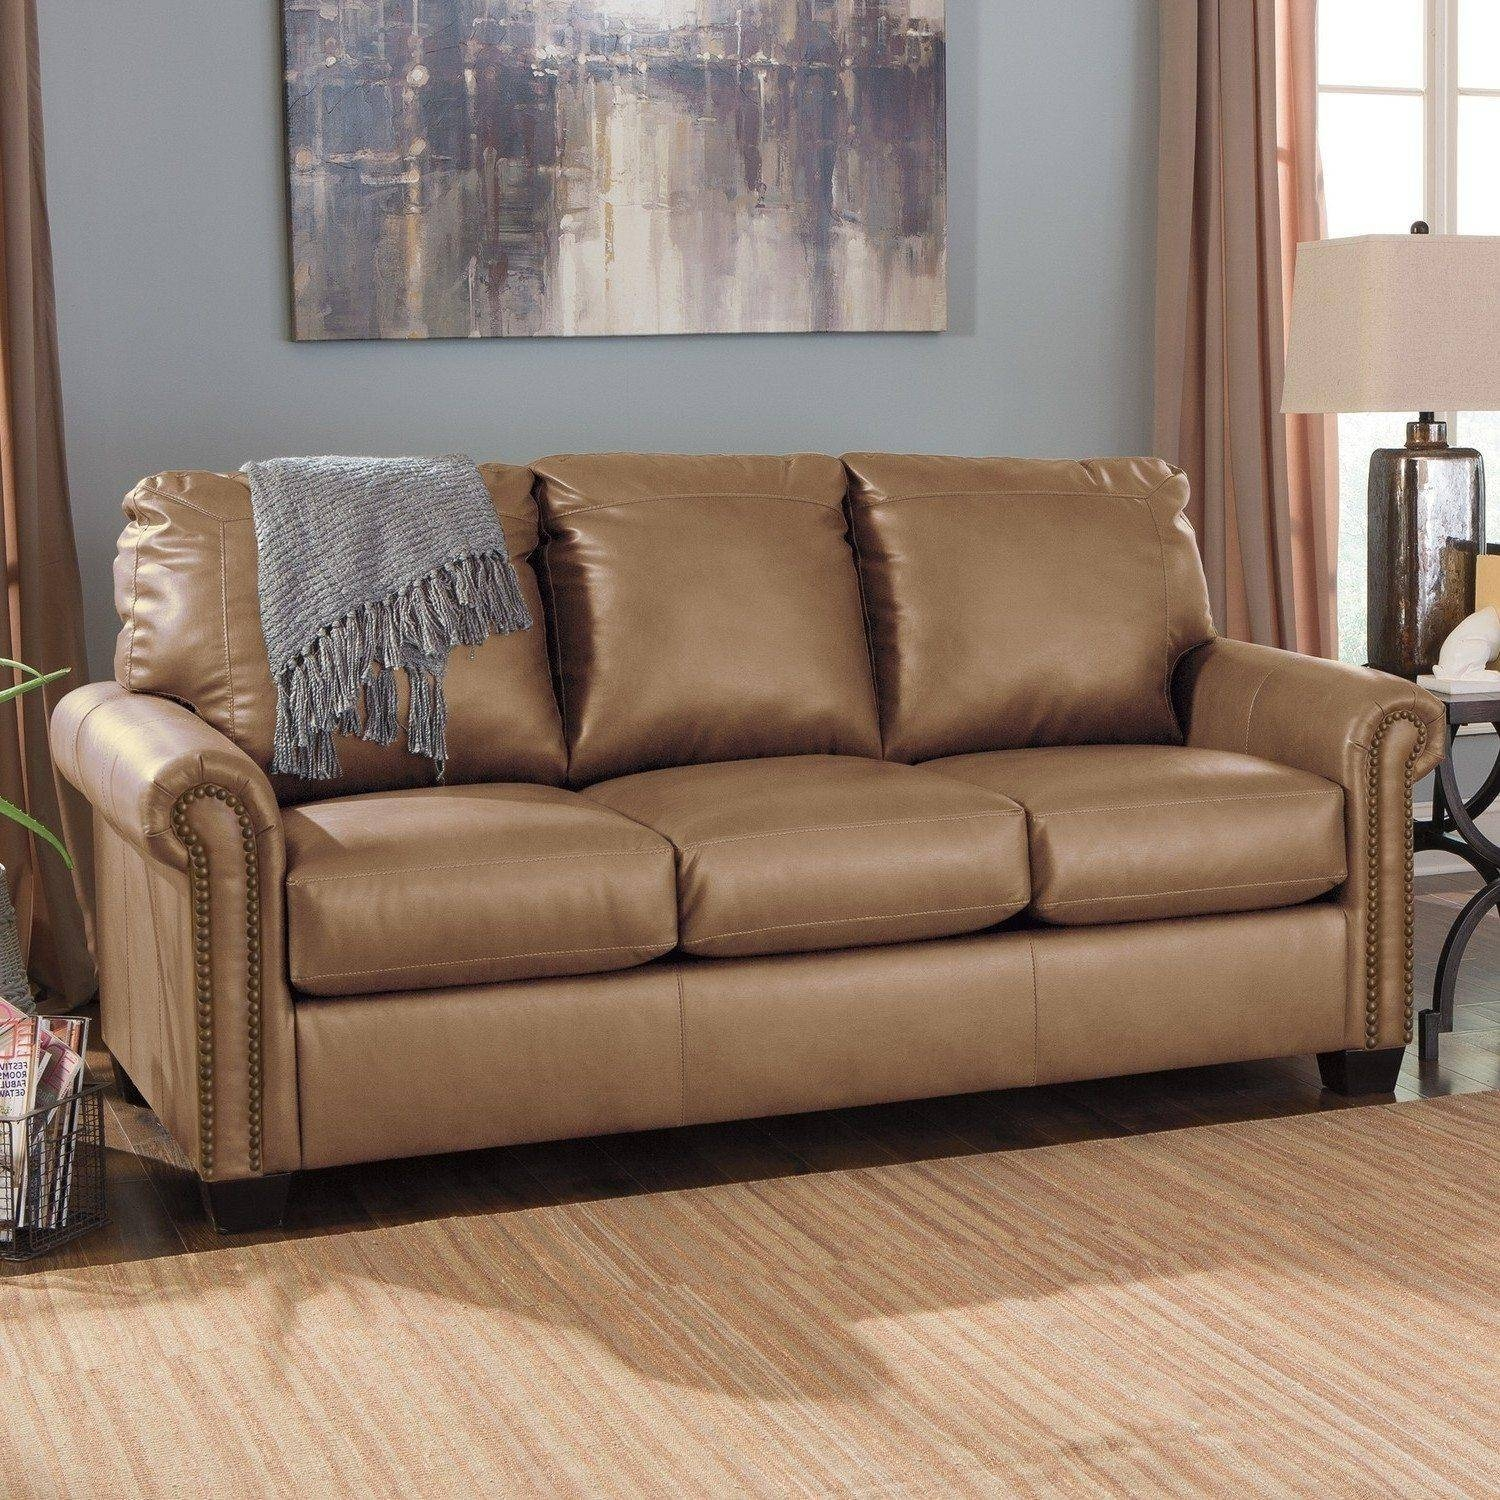 20 Collection Of Davis Sleeper Sofas | Sofa Ideas throughout Davis Sleeper Sofas (Image 6 of 15)